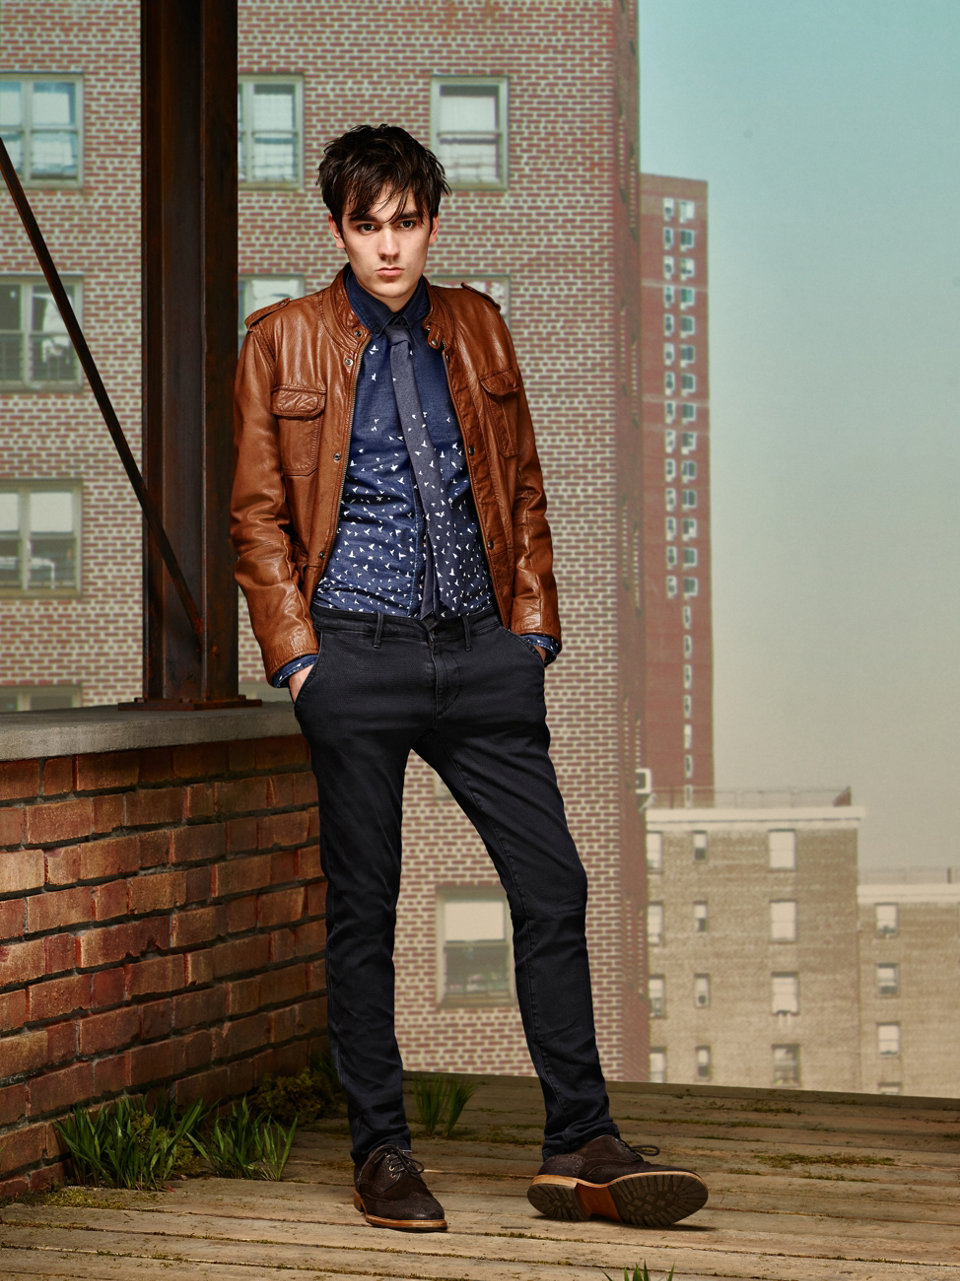 Brown leather jacket, dark blue patterned shirt, dark blue jeans and dark brown shoes by BOSS Orange